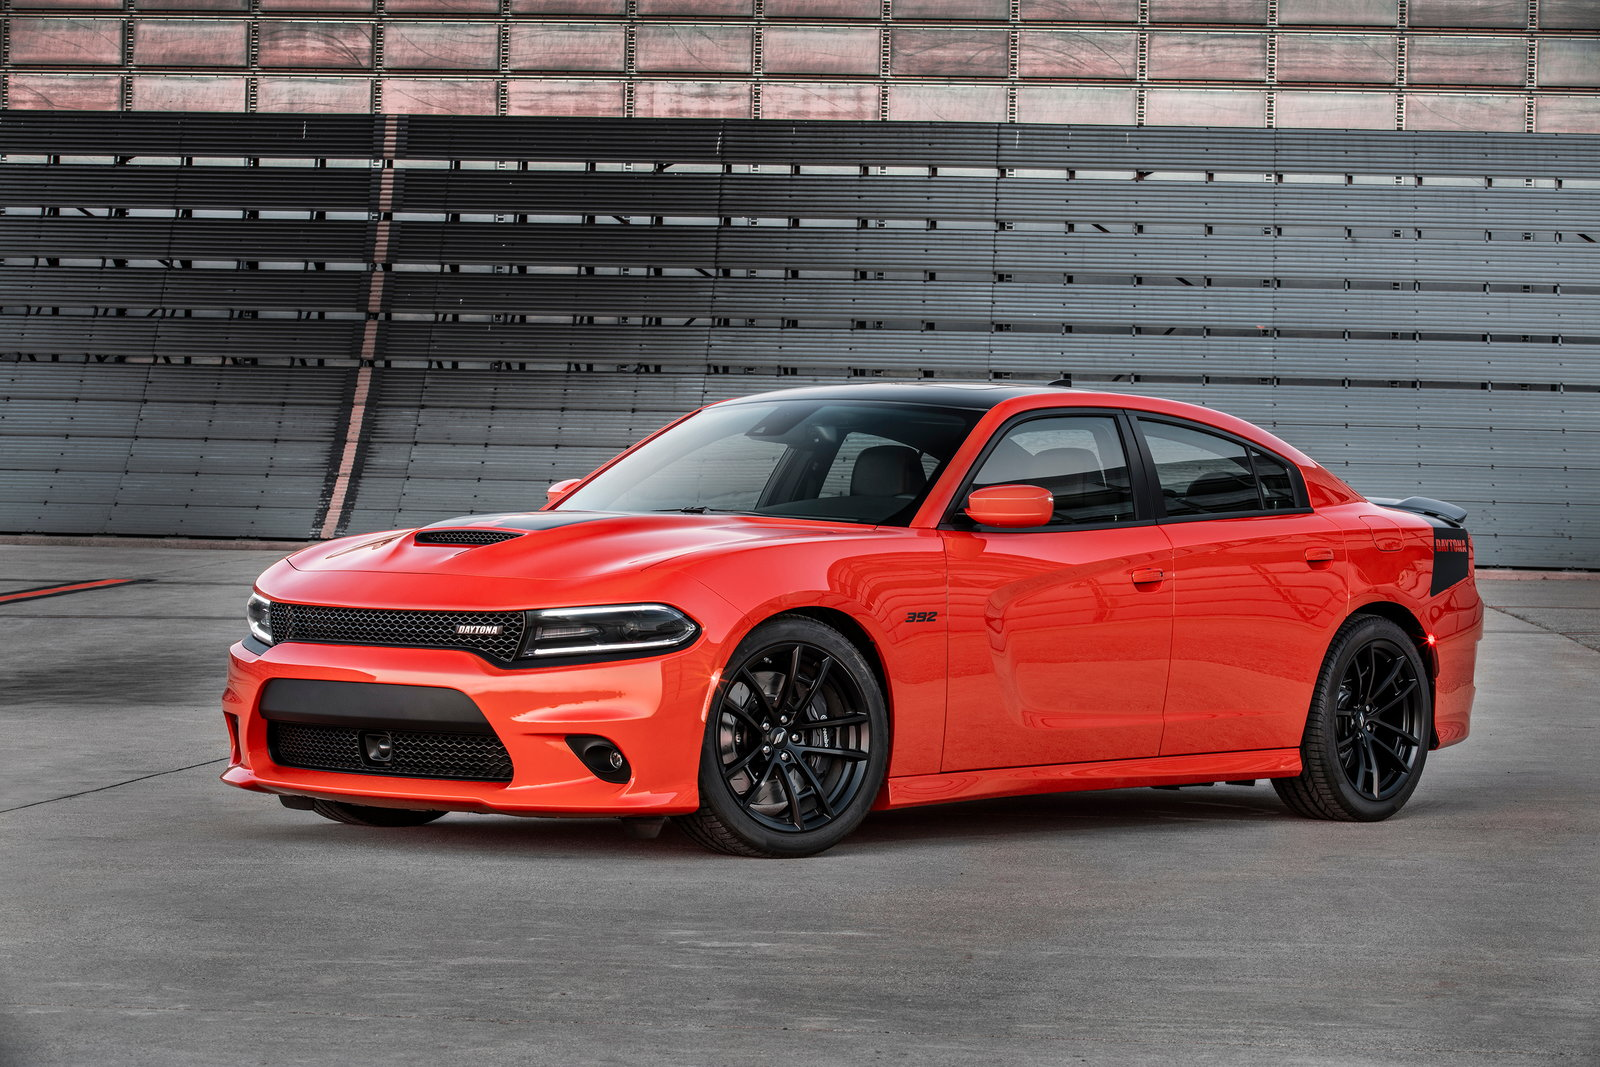 7 Moments That Basically Sum Up Your 2018 Dodge Charger Experience. | 2018 Dodge Charger